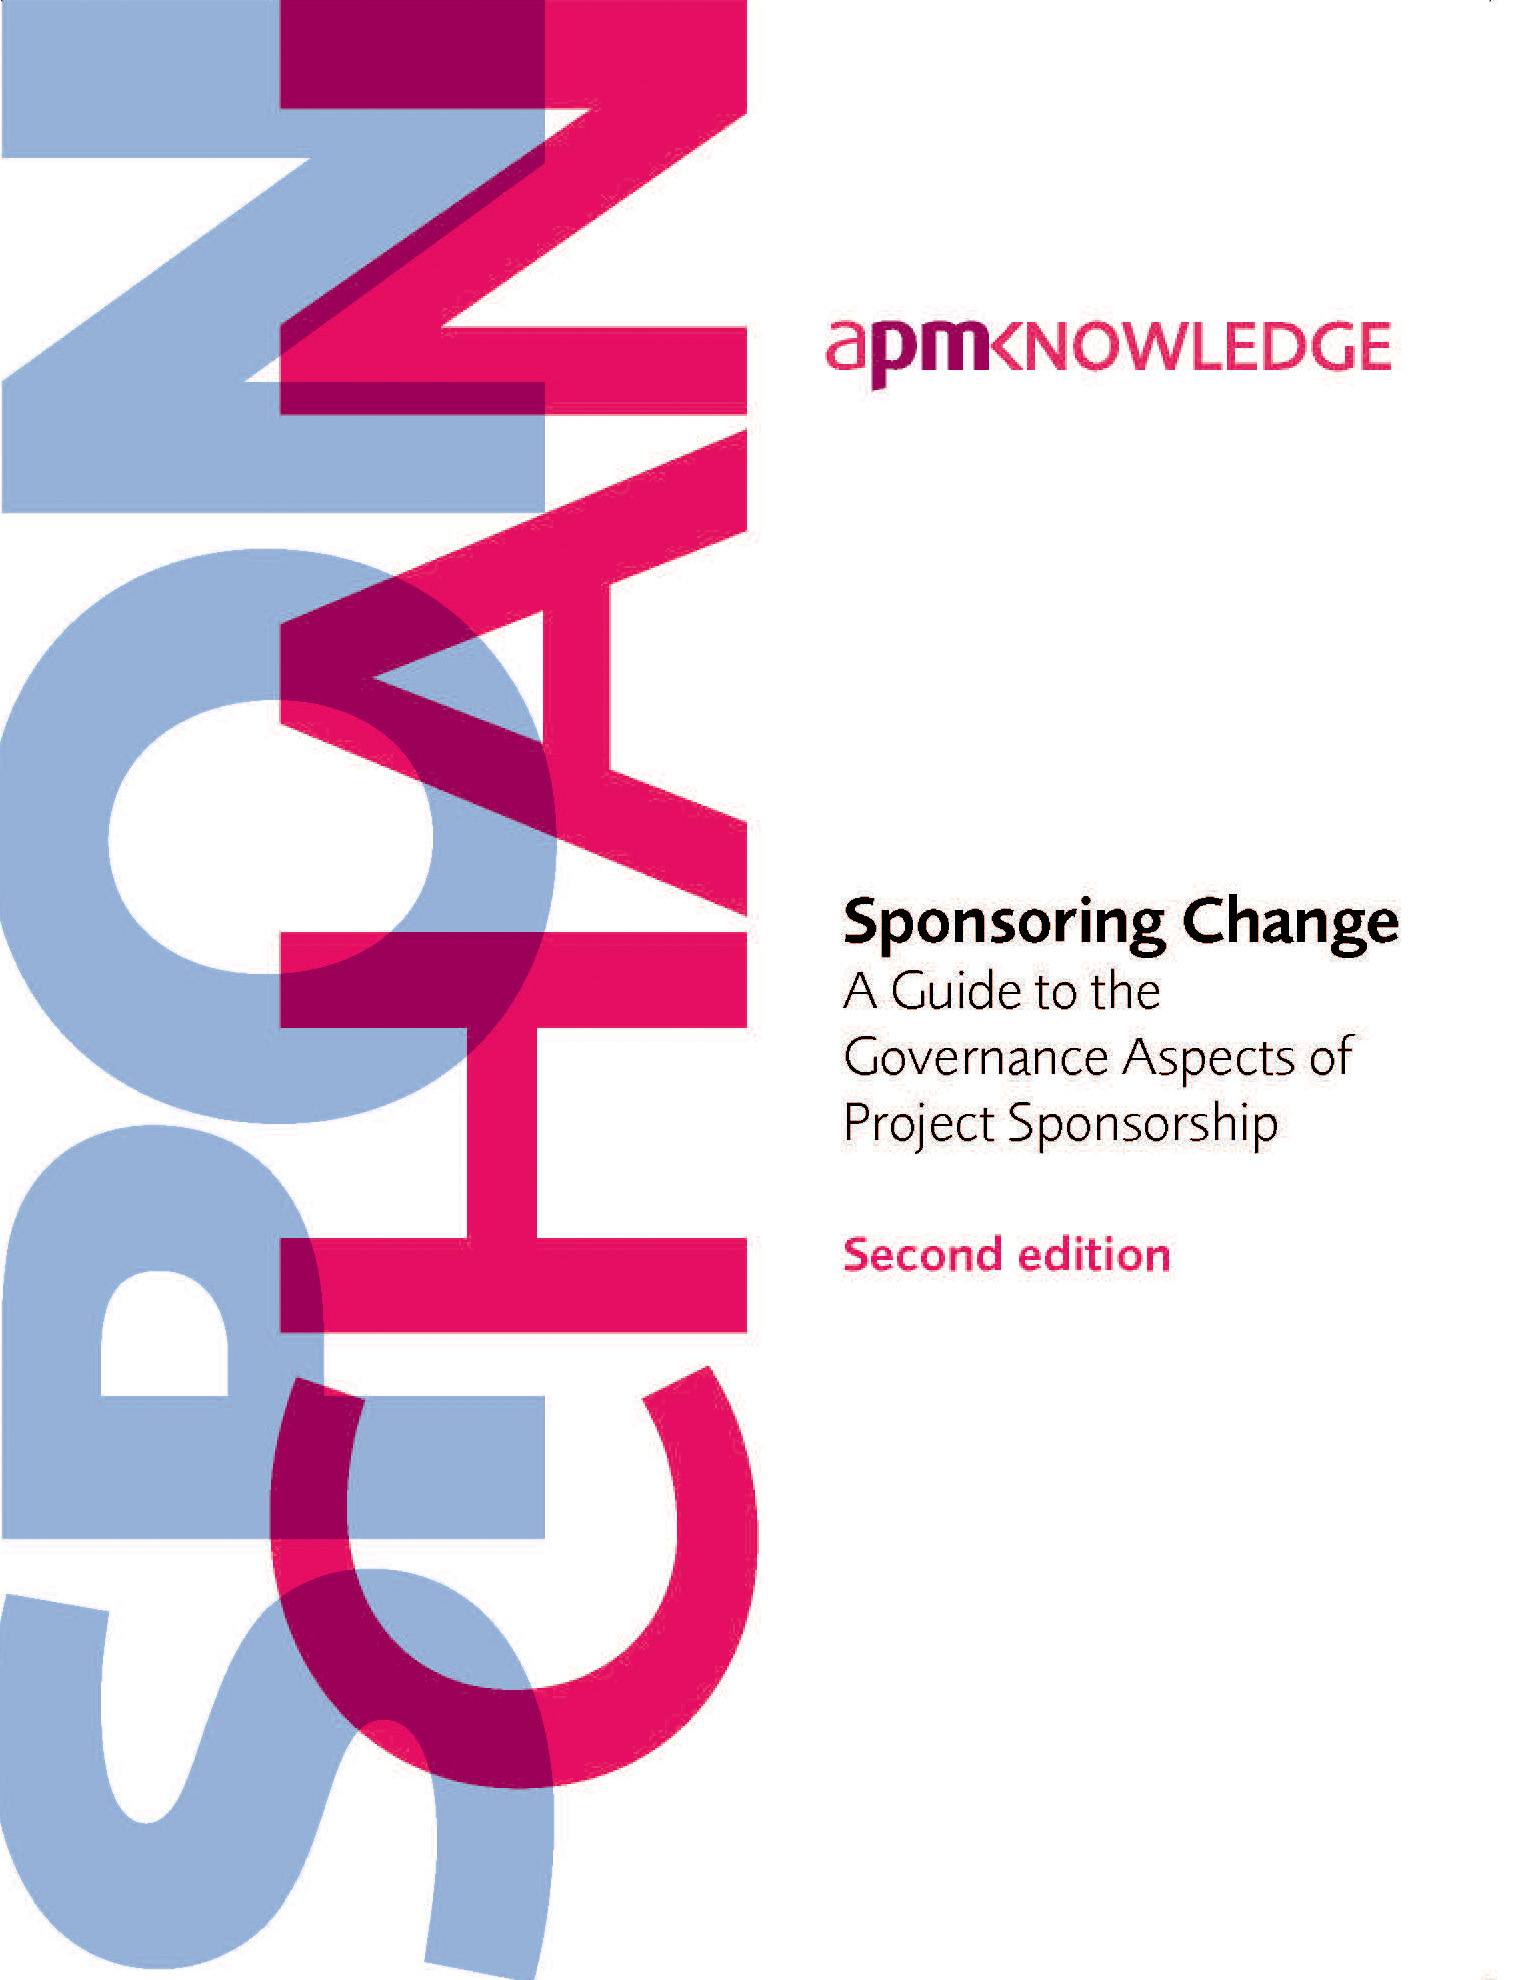 Sponsoring Change, 2nd edition